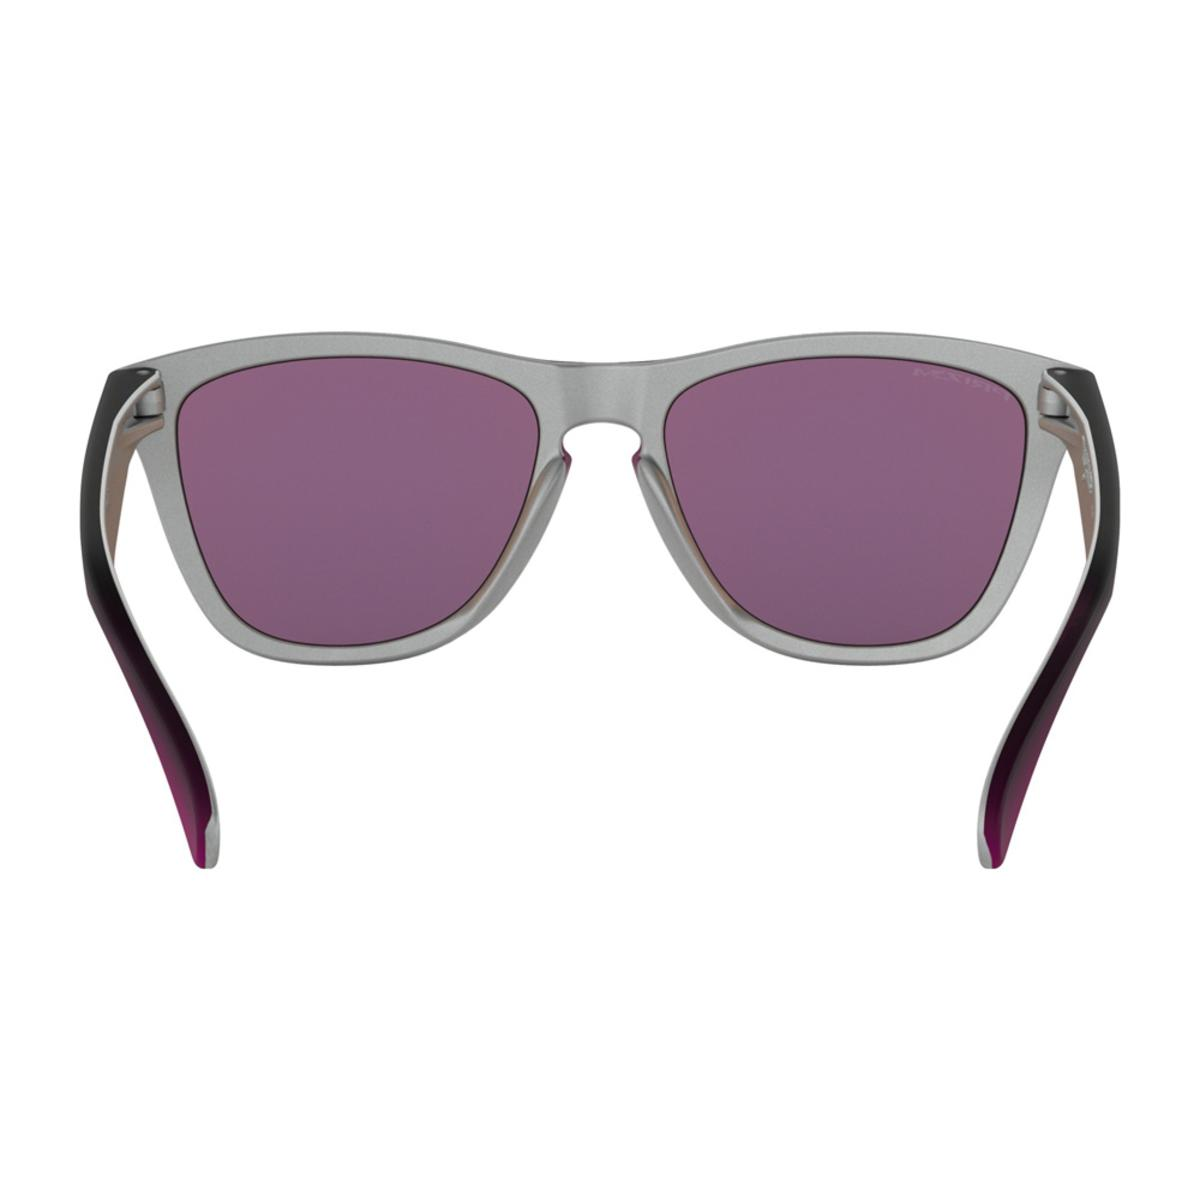 a7467ab613 Oakley Frogskins Splatterfade Collection Black Pink Sunglasses w Prizm  Sapphire - The Warming Store